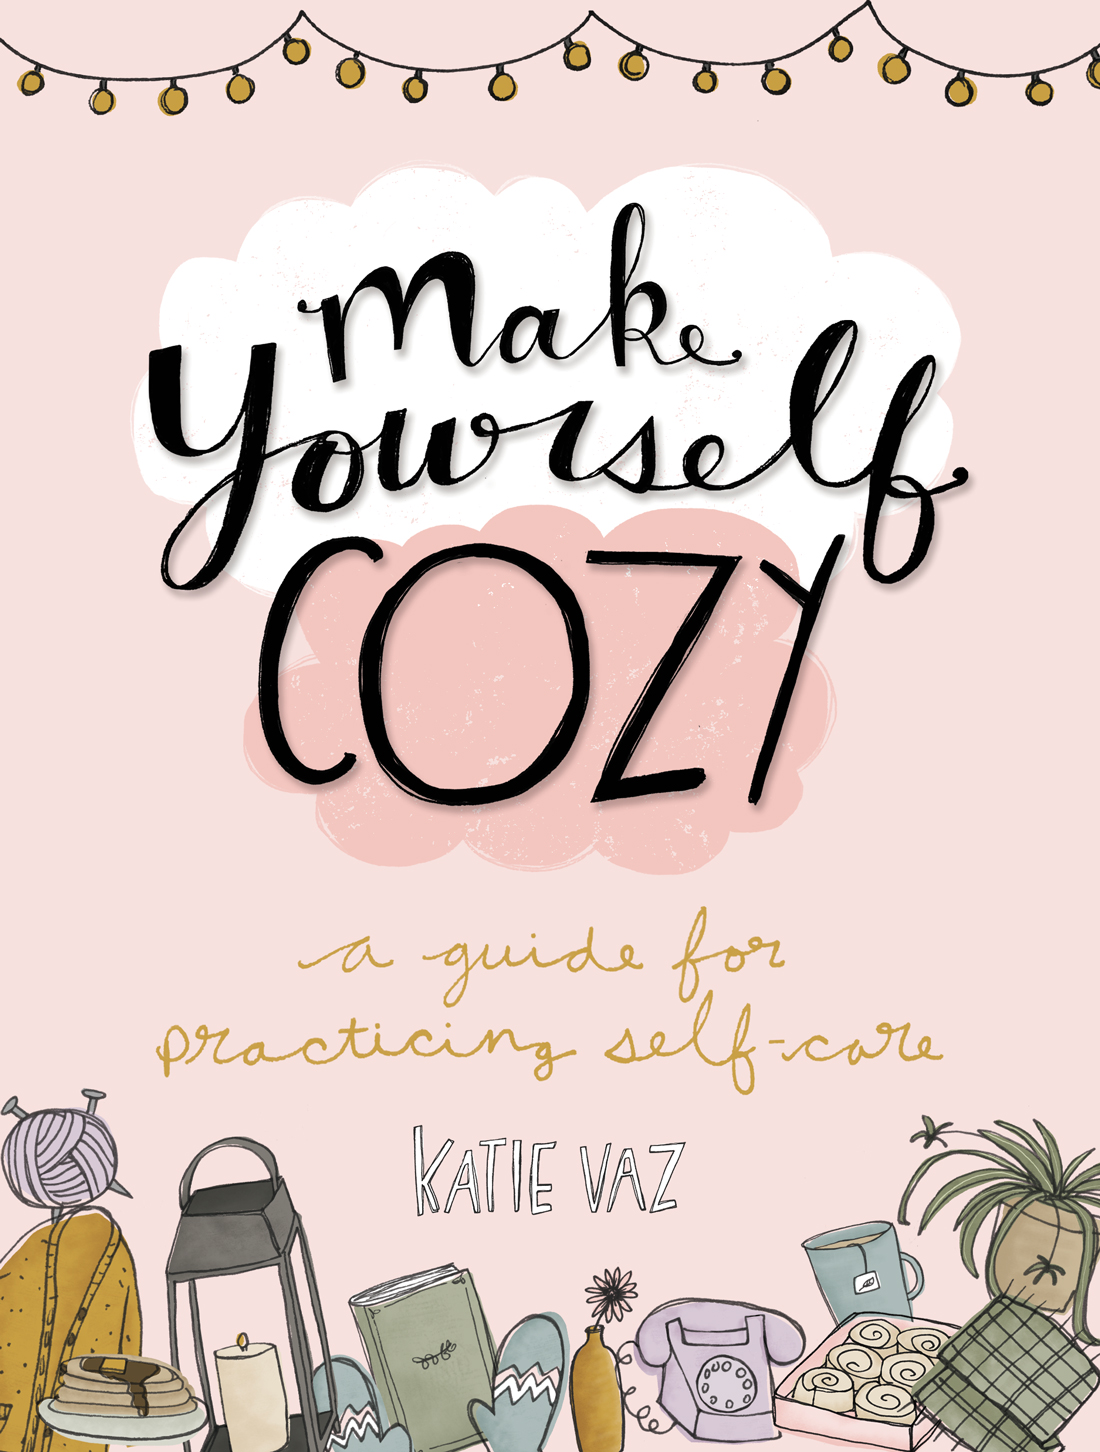 Make Yourself Cozy self-care book